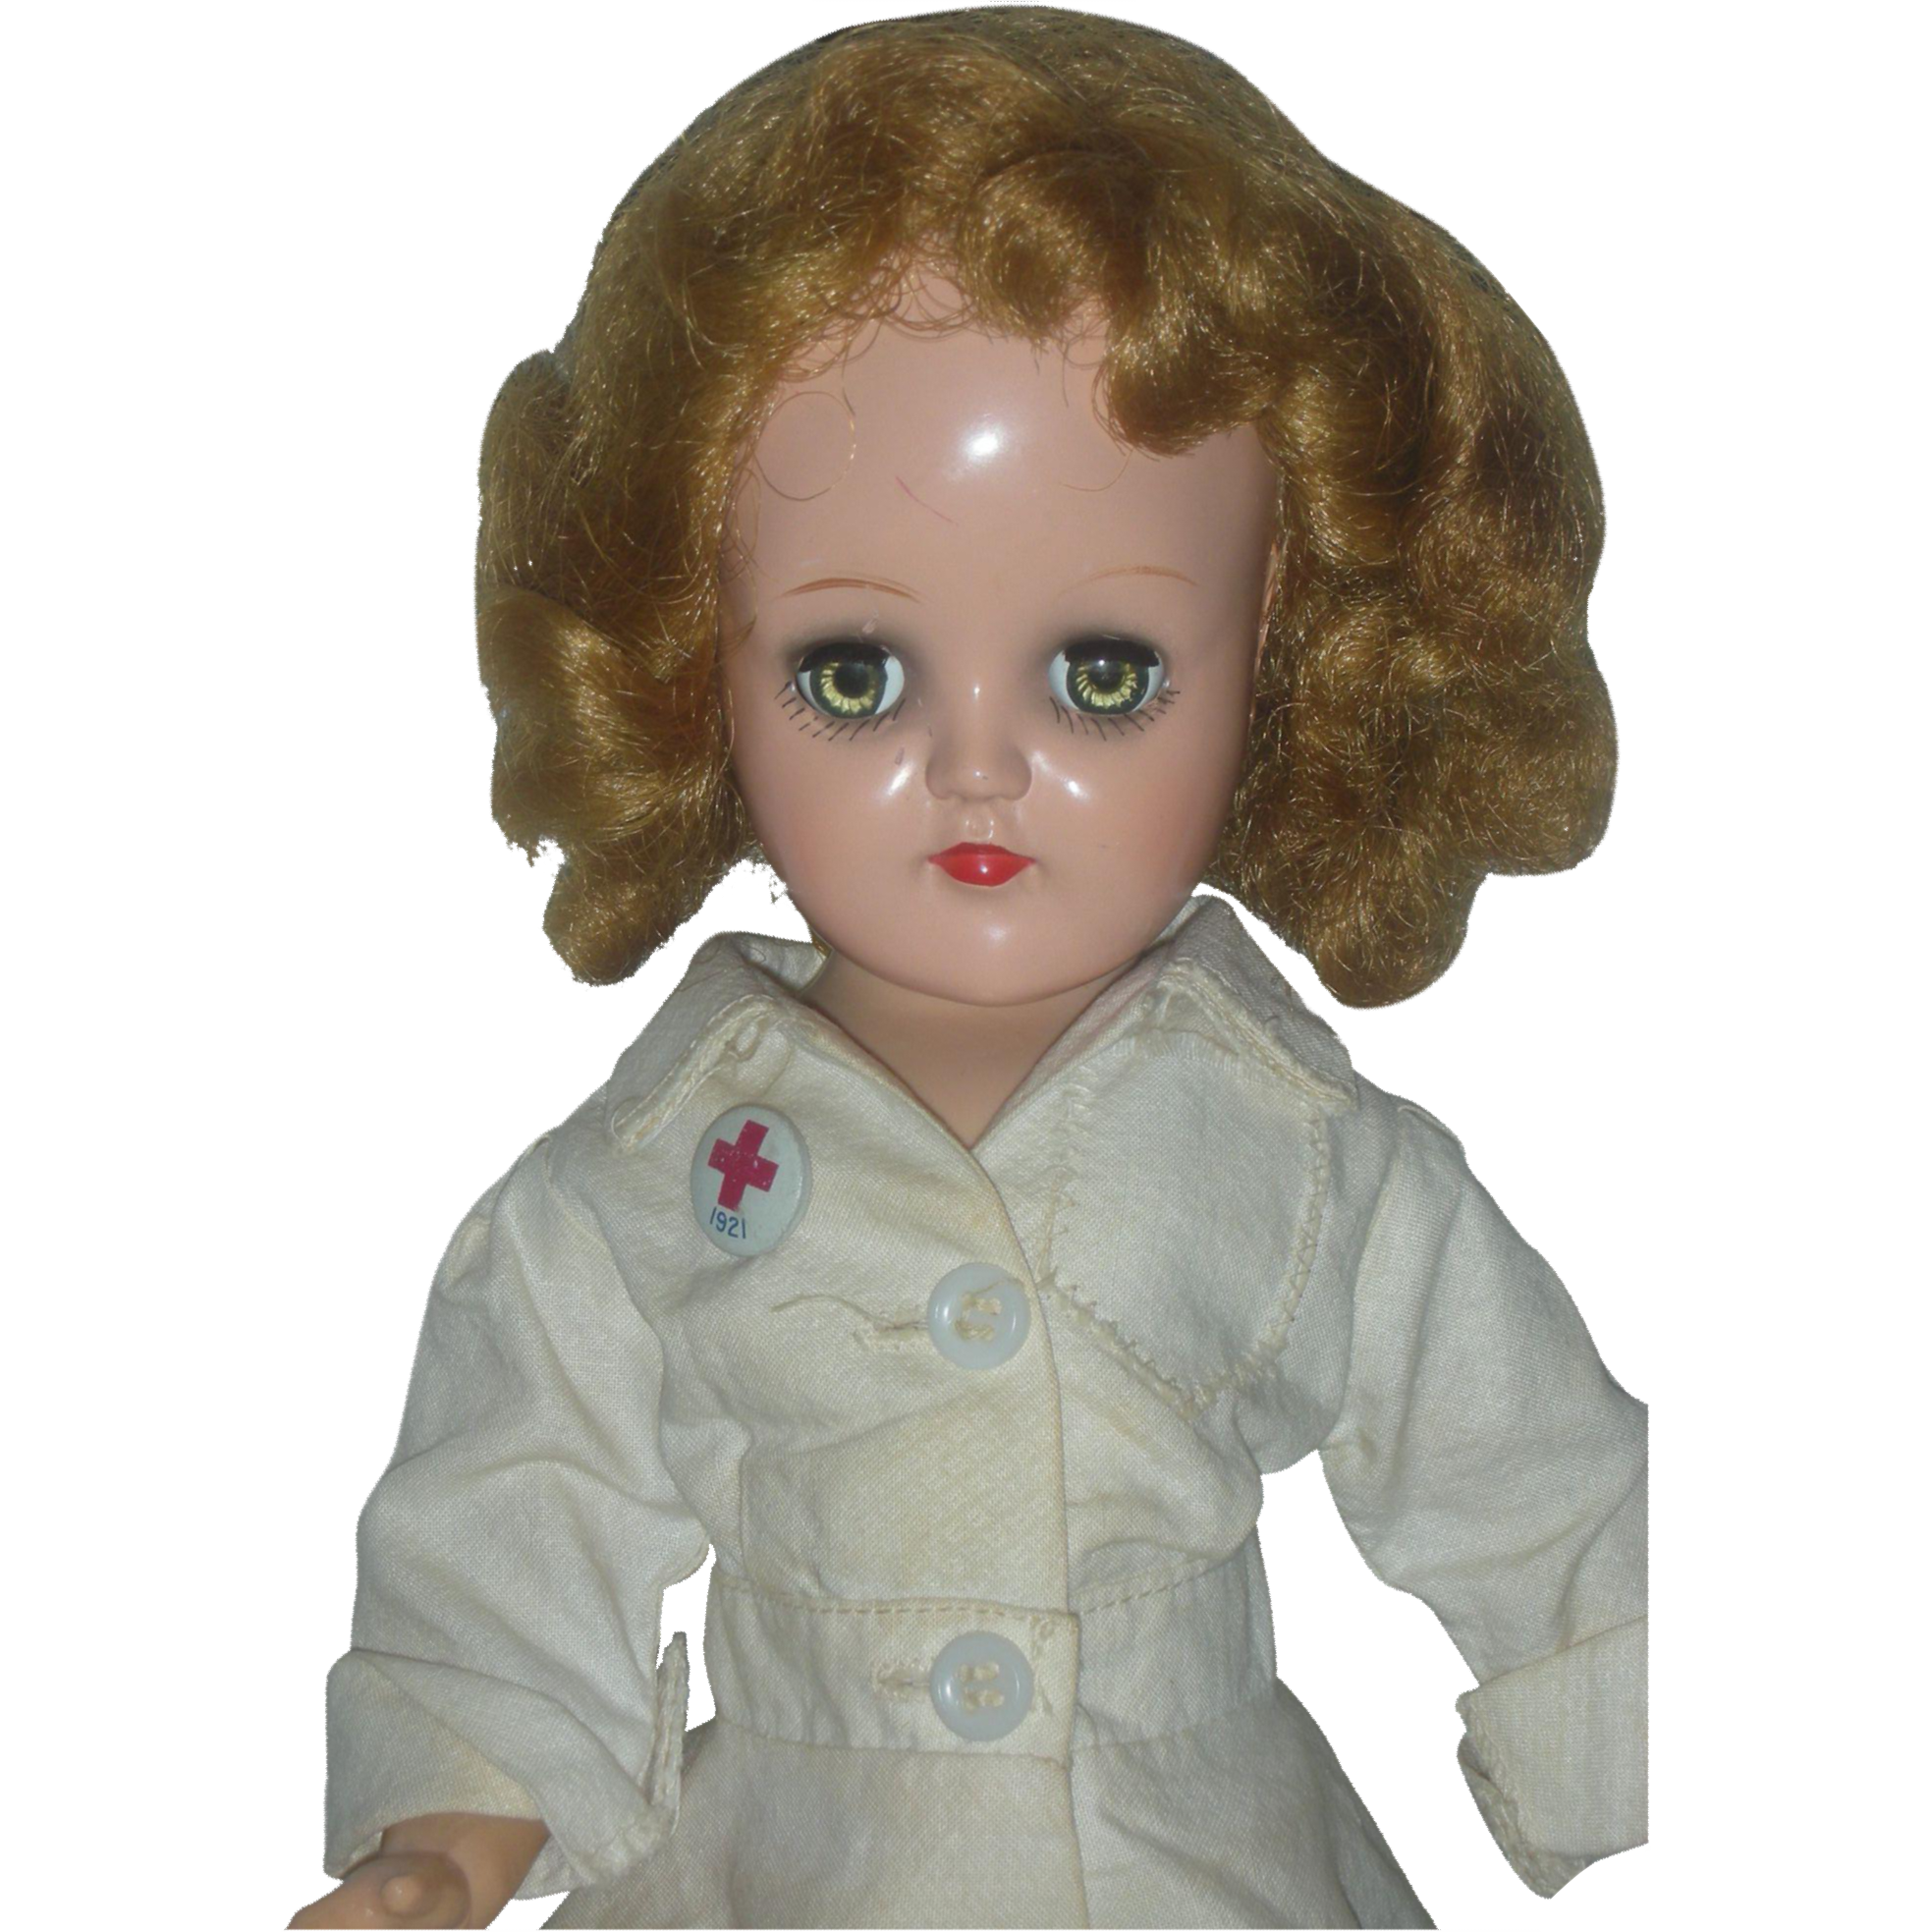 Vintage Ideal P-90 Miss Curity RN Toni Nurse Doll